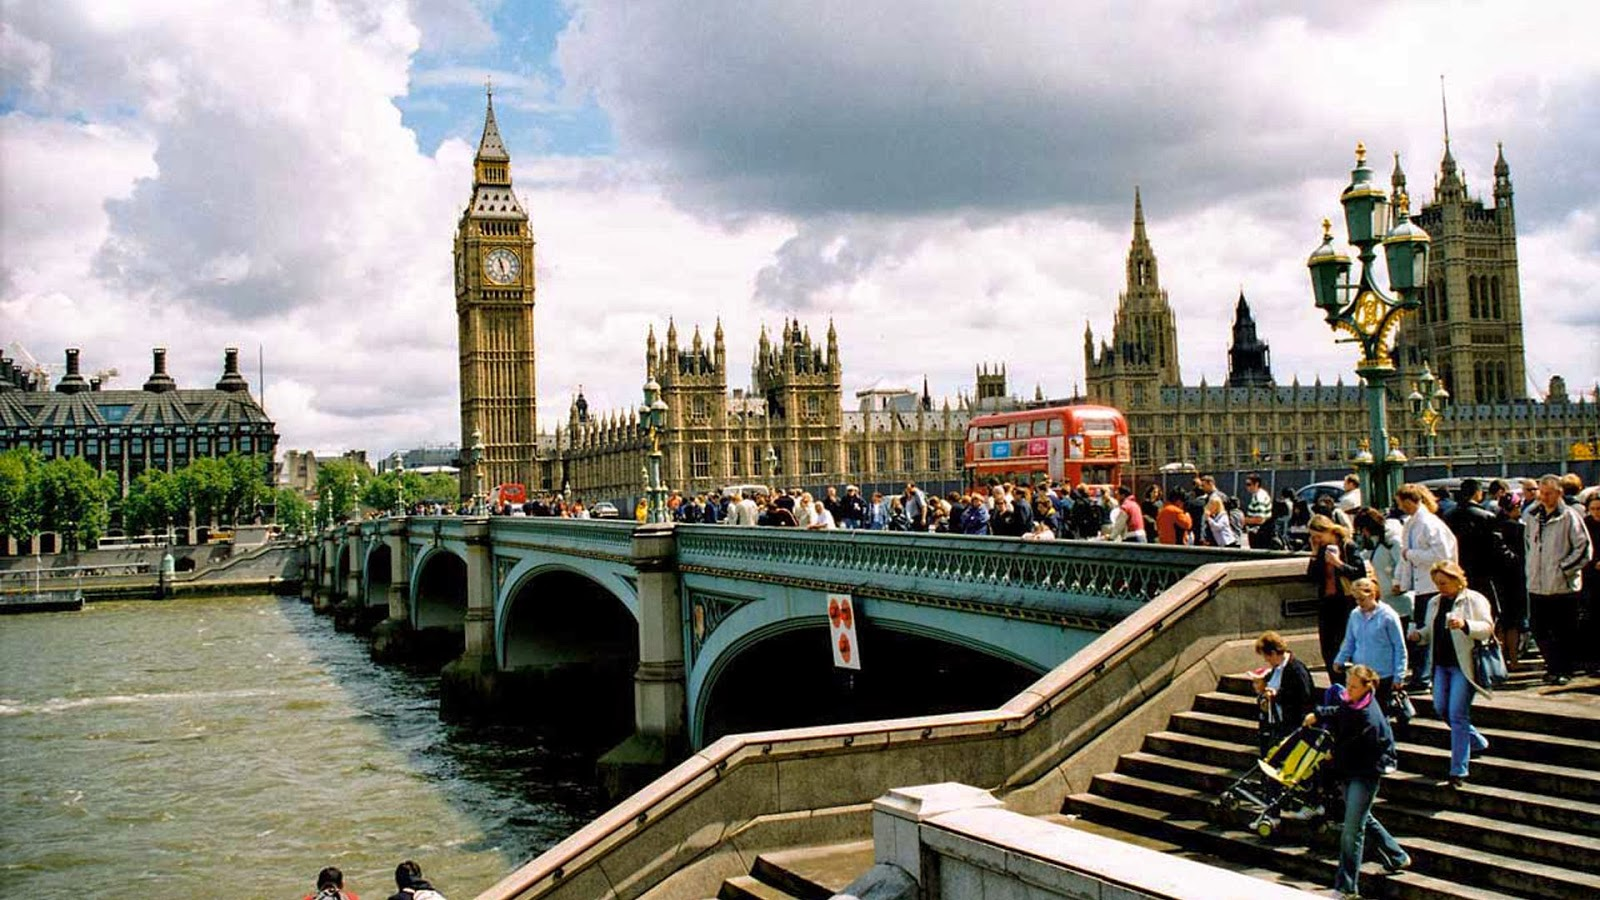 Composed Upon Westminster Bridge, September 3, 1802 by William Wordsworth